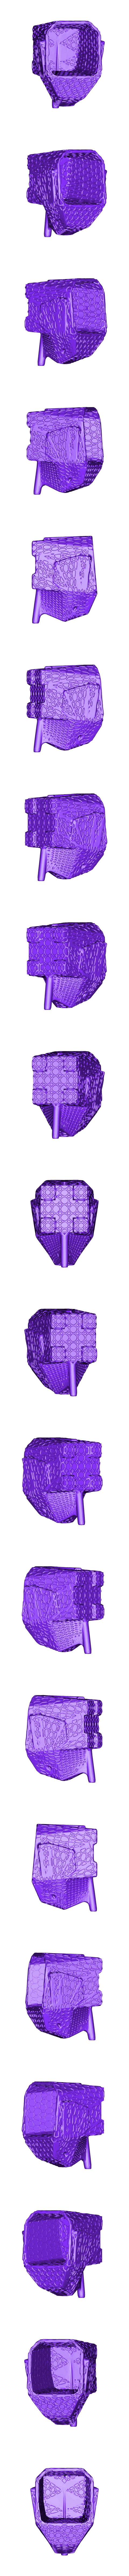 elefante (closed voronoi)_fixed.stl Download free STL file Jumbo Elephant Cutlery Drainer (remix) • 3D printing object, IdeaLab